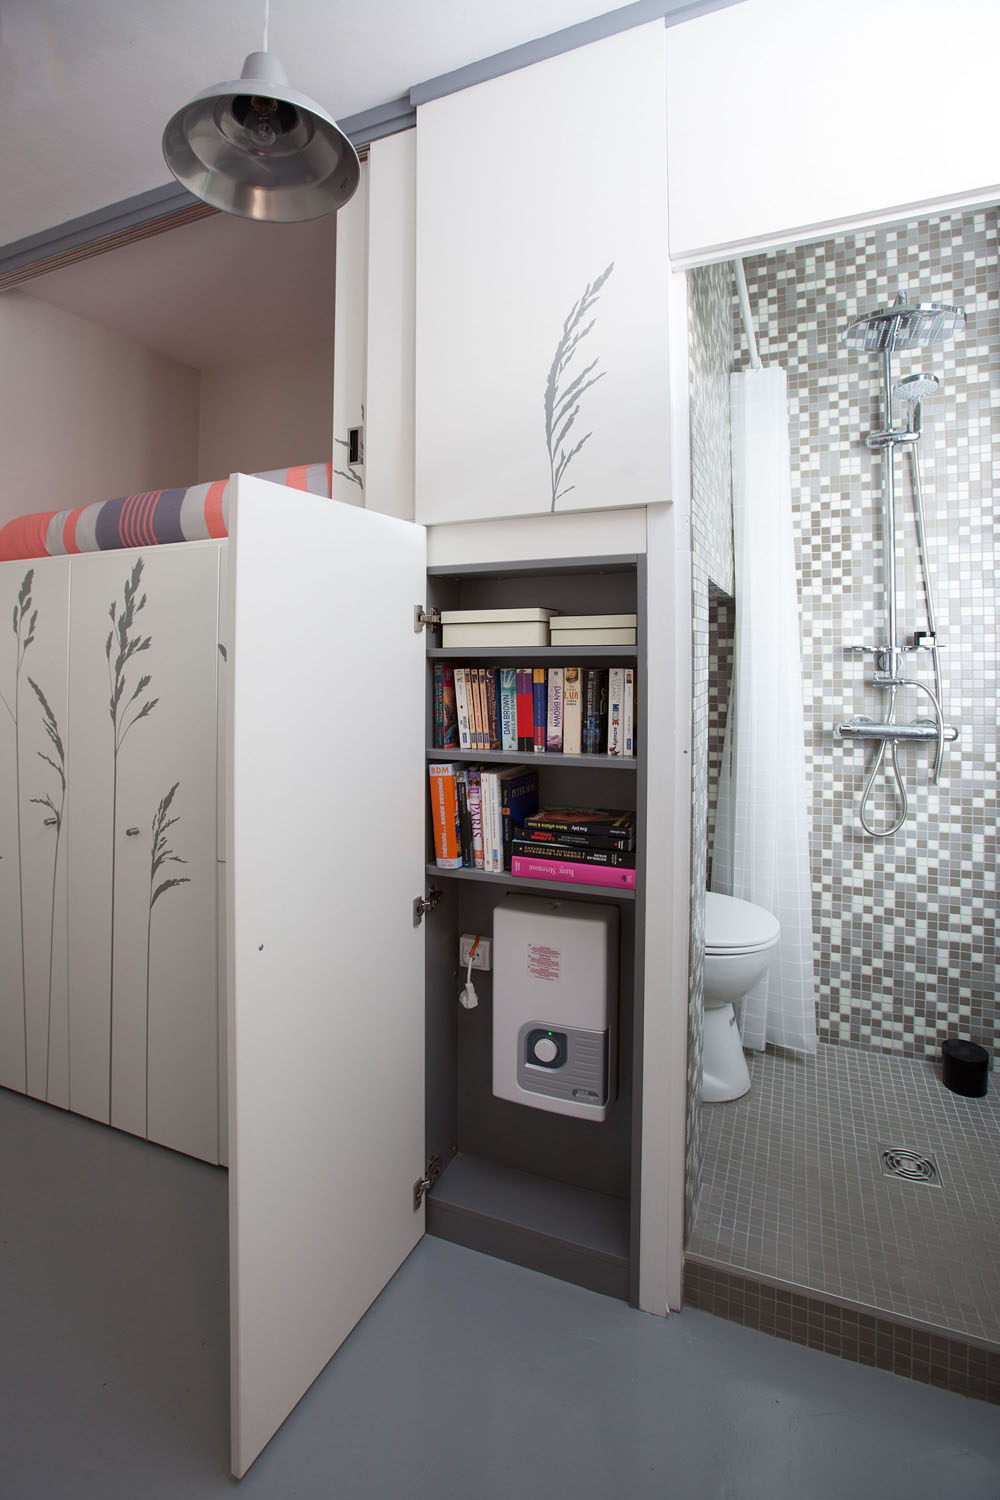 Compact Apartment In Paris by Kitoko Studio 8 Incredibly Small Apartment in Paris Reduces Functions to Minimum